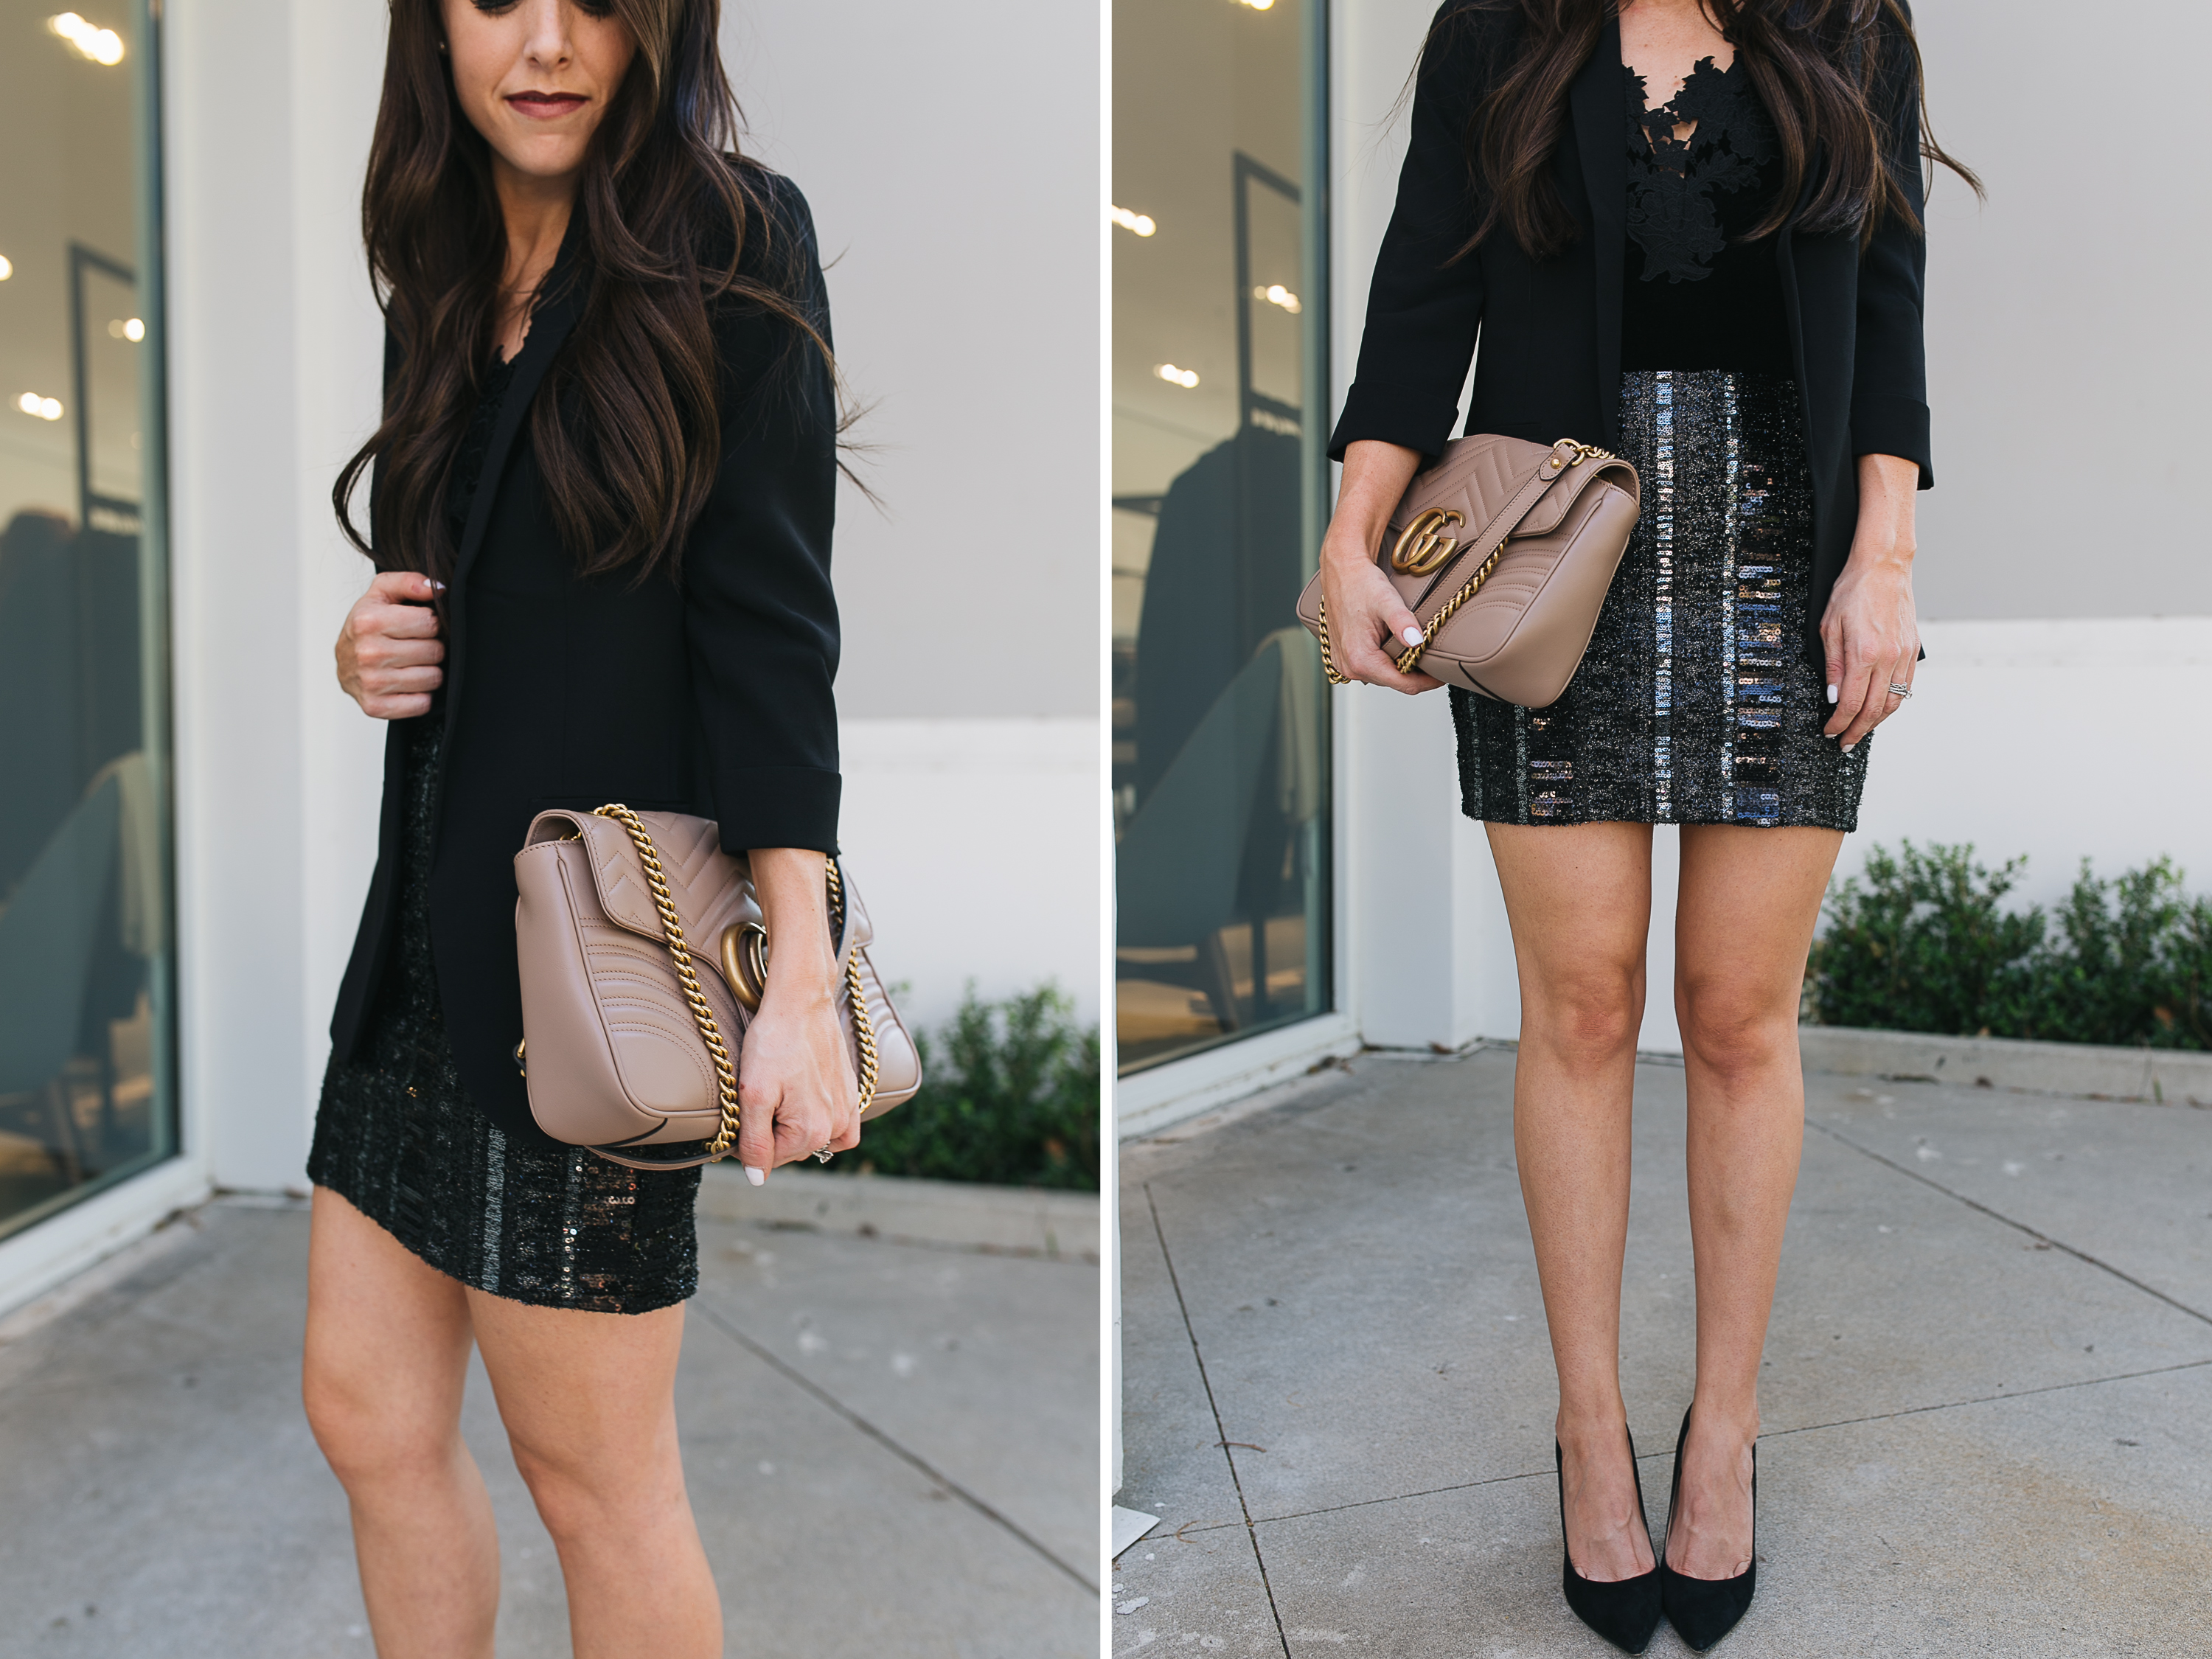 Style blogger Daryl-Ann Denner shares holiday party outfit ideas with Express, including a lace and velvet bodysuit with boyfriend blazer and mini skirt and gucci marmot bag